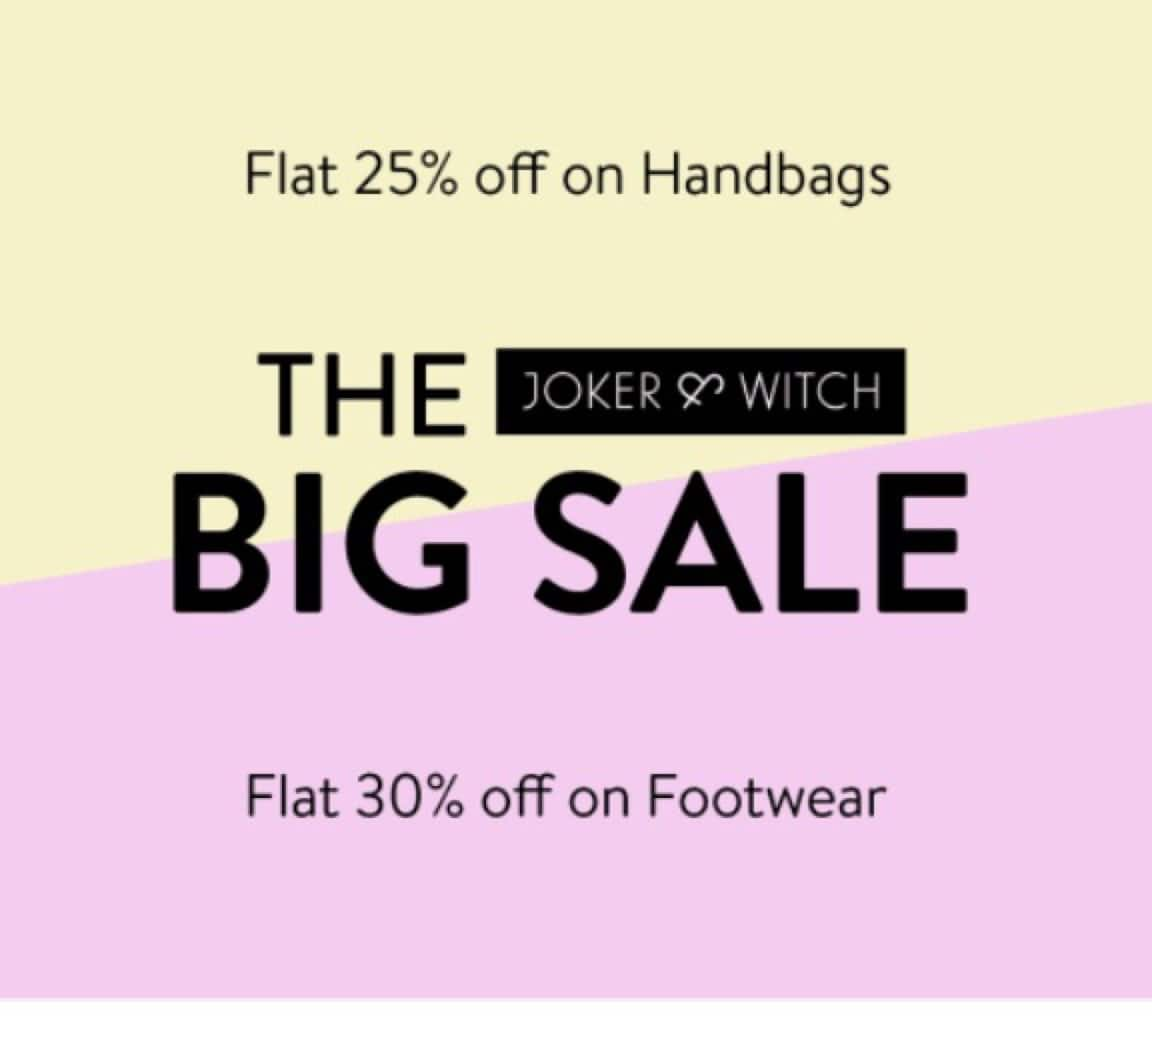 Super Sale on Bags and Shoes                    #baglove #bagoftheday #shoestyle #multy-lofars-shoes-for-women #bagsale #shoes4sale #sale #supersellersale  #bagsshoesupersale